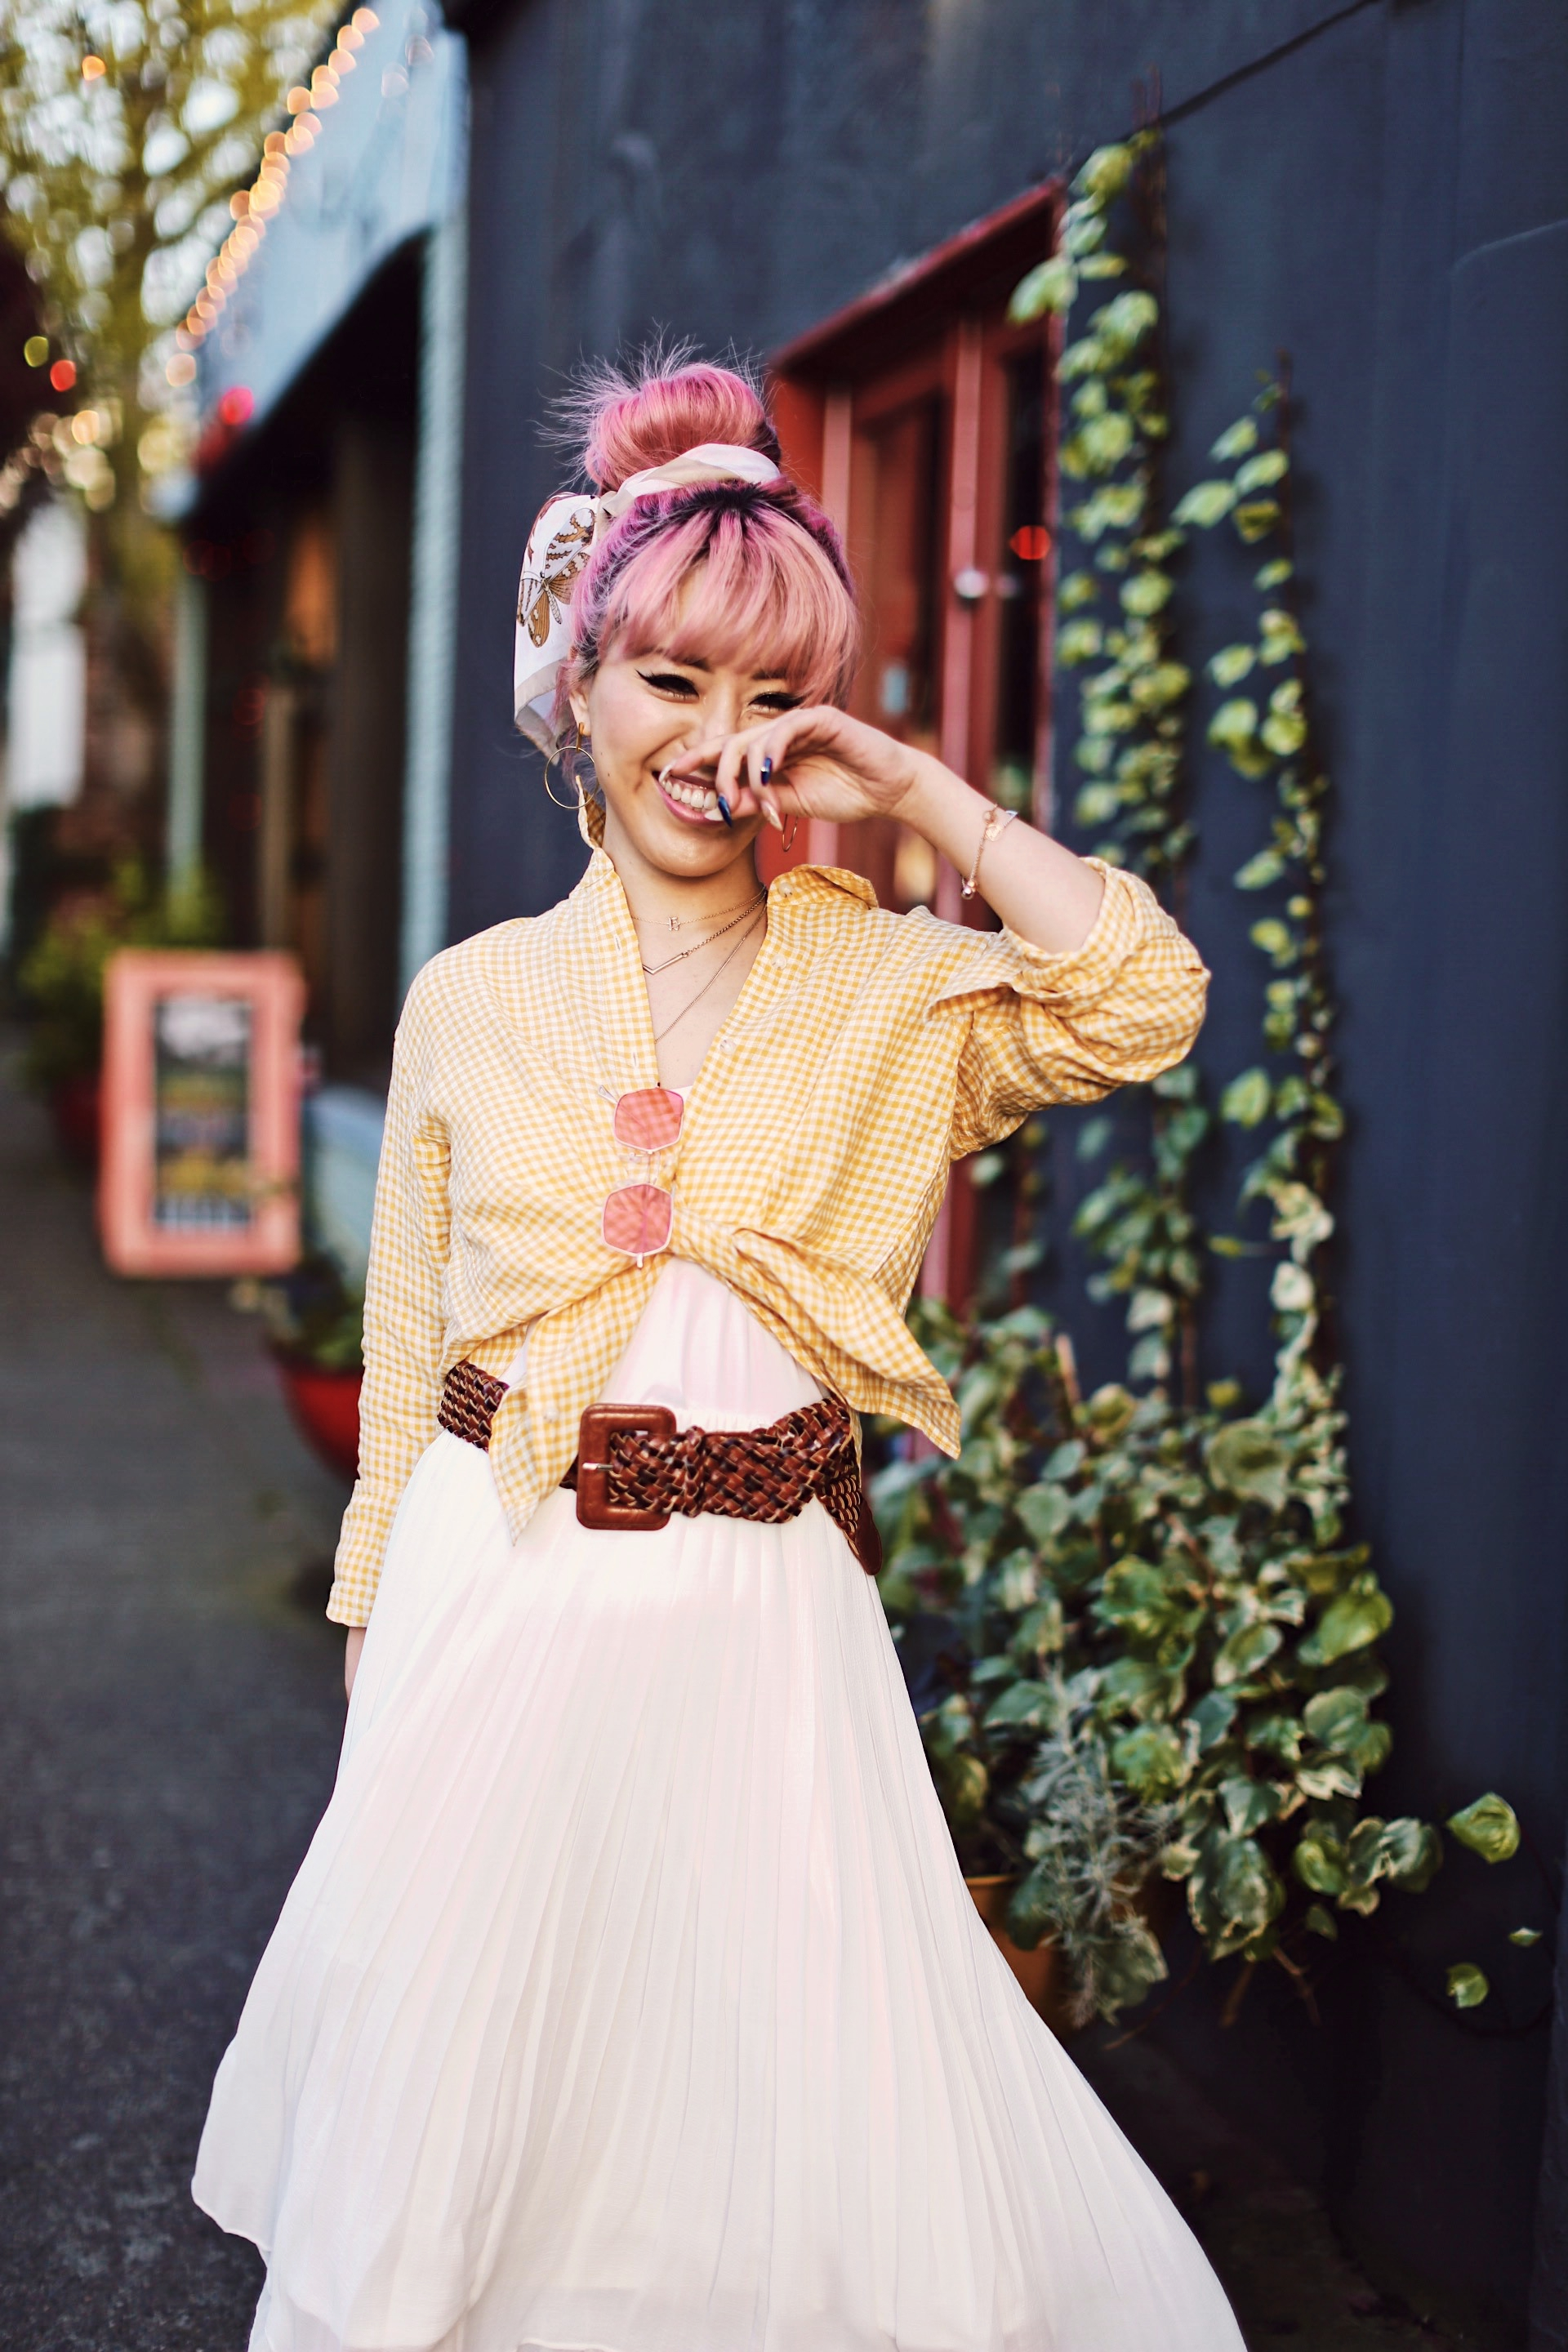 Uniqlo yellow Linen gingham shirt-Uniqlo White pleated chiffon midi skirt-Uniqlo Airism brat-pink tinted sunglasses ZERO UV-She in Pom pom Straw bucket bag-Vintage scarf bun hair style-Steve Madden Belt-Jane and the shoe denim oxford platforms-Aika's Love Closet-seattle fashion style blogger-Japanese-pink hair-smiling-spring fashion 19